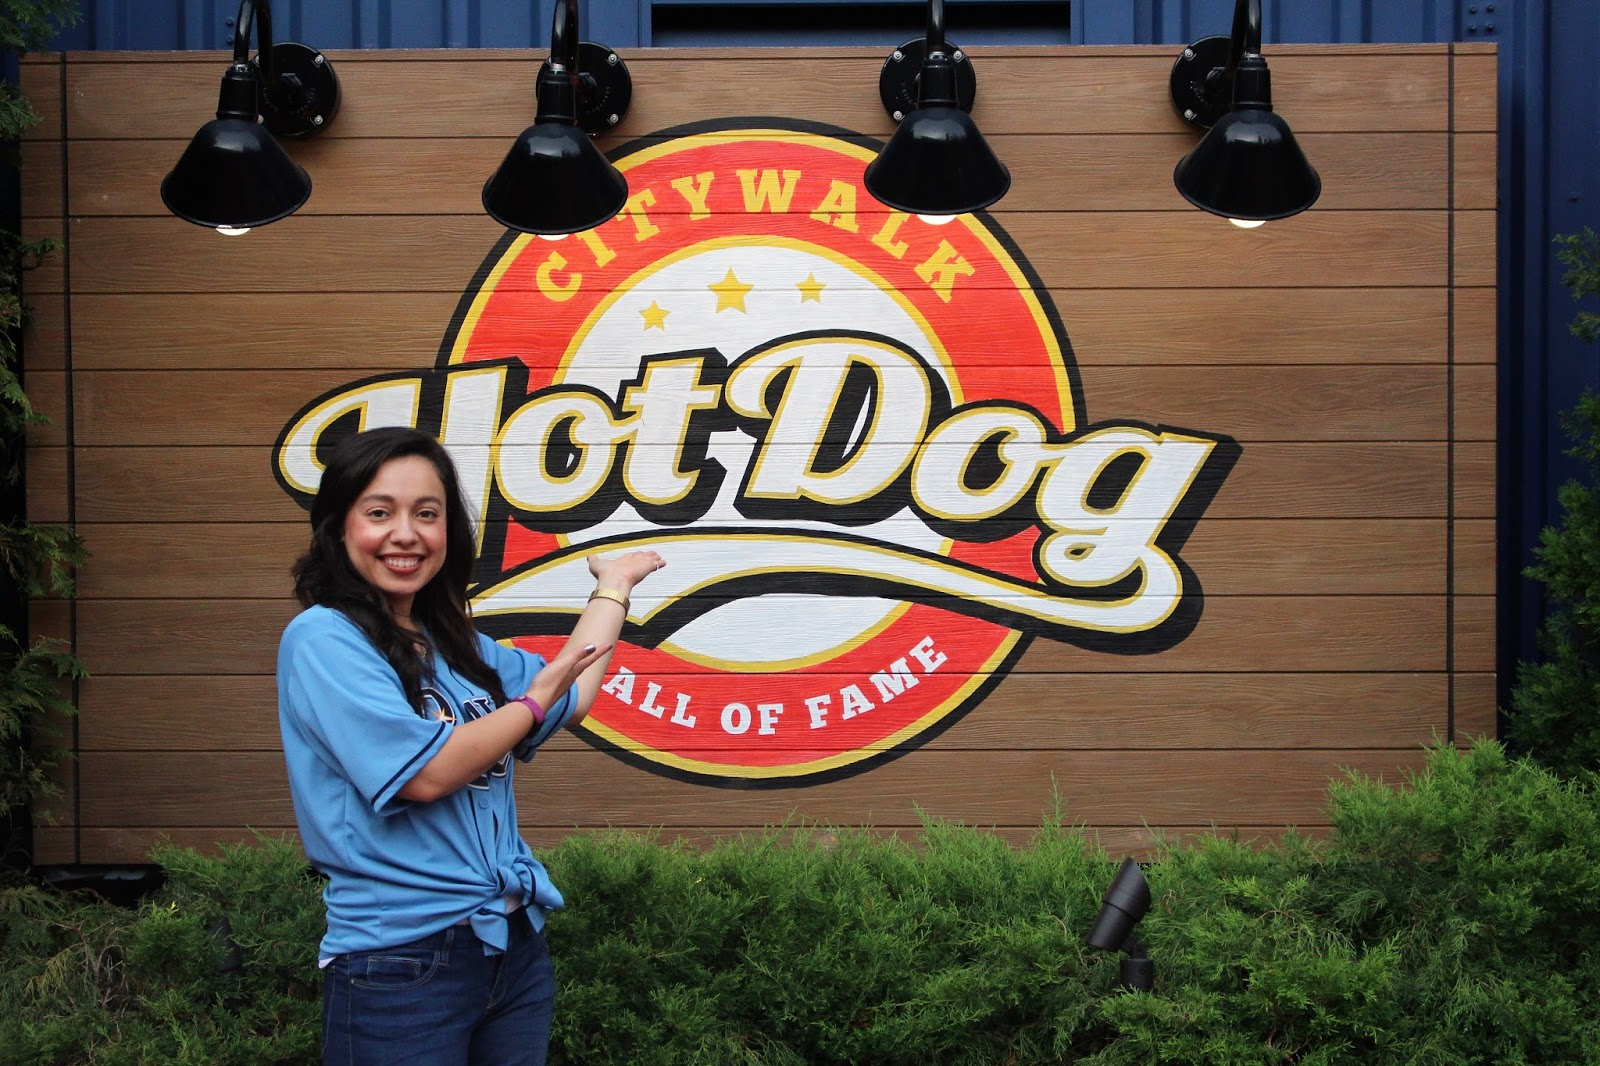 Hot Dog Hall of Fame